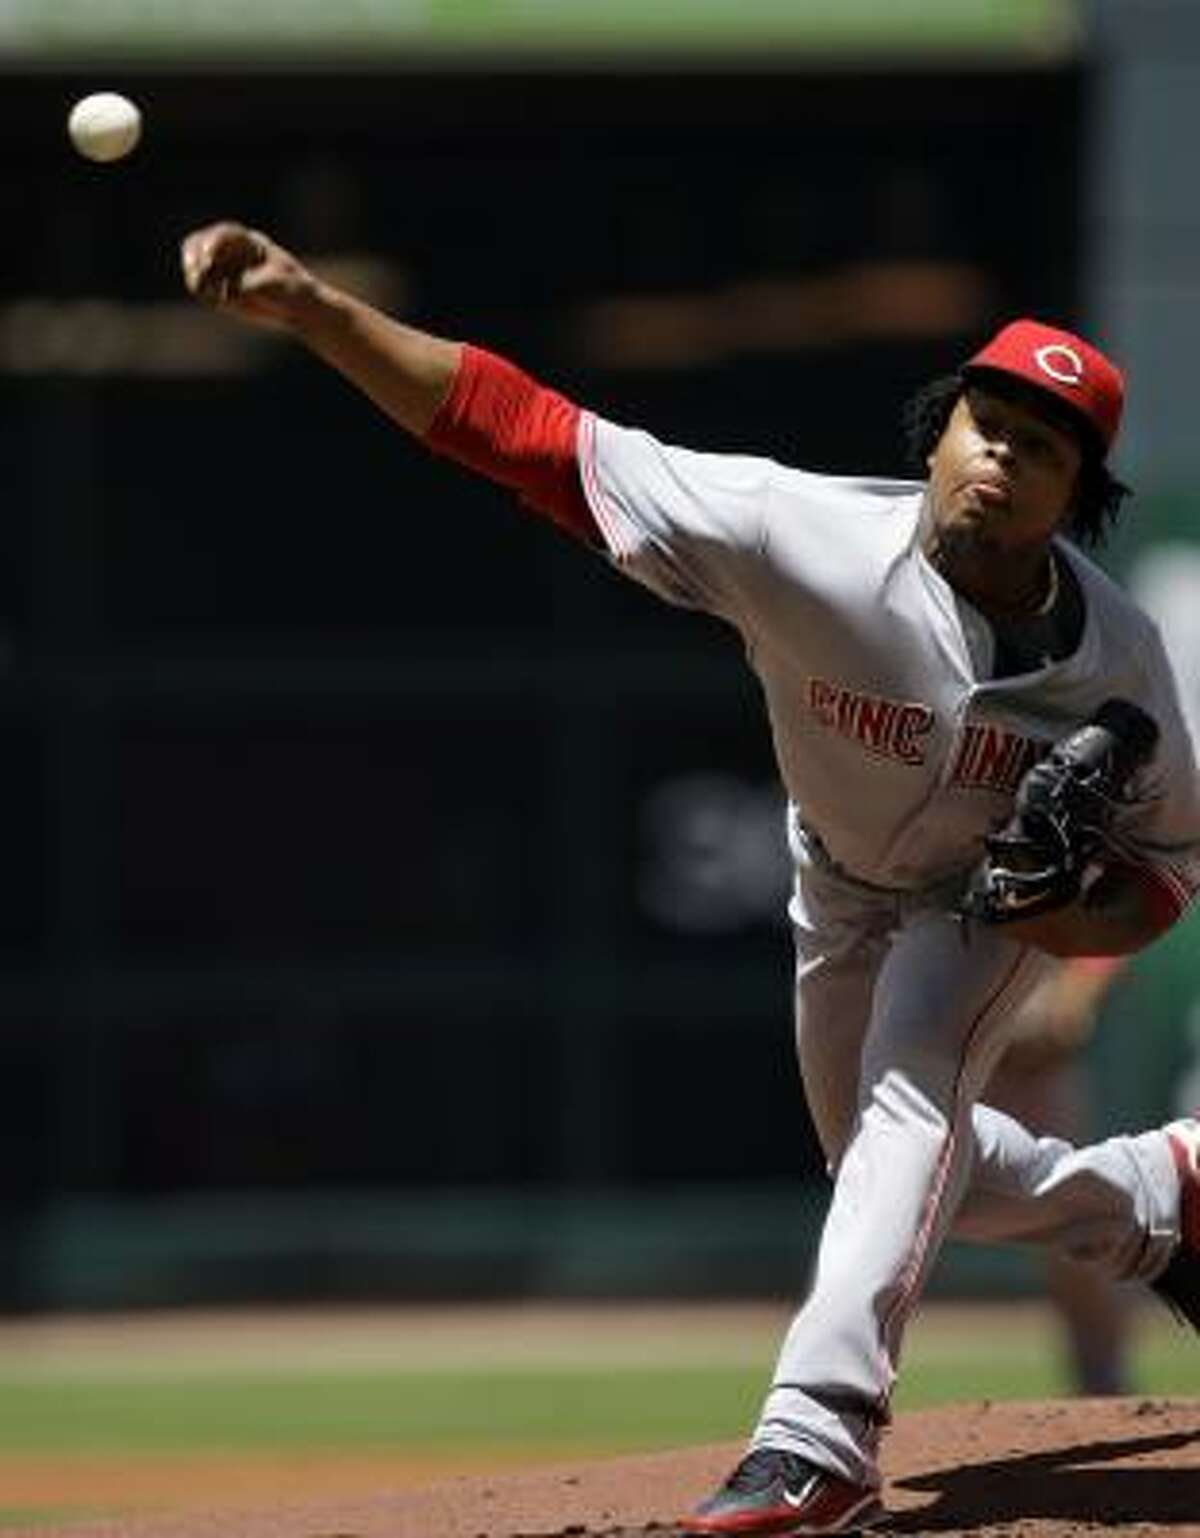 Cincinnati Reds pitcher Edinson Volquez throws against the Houston Astros during the first inning.